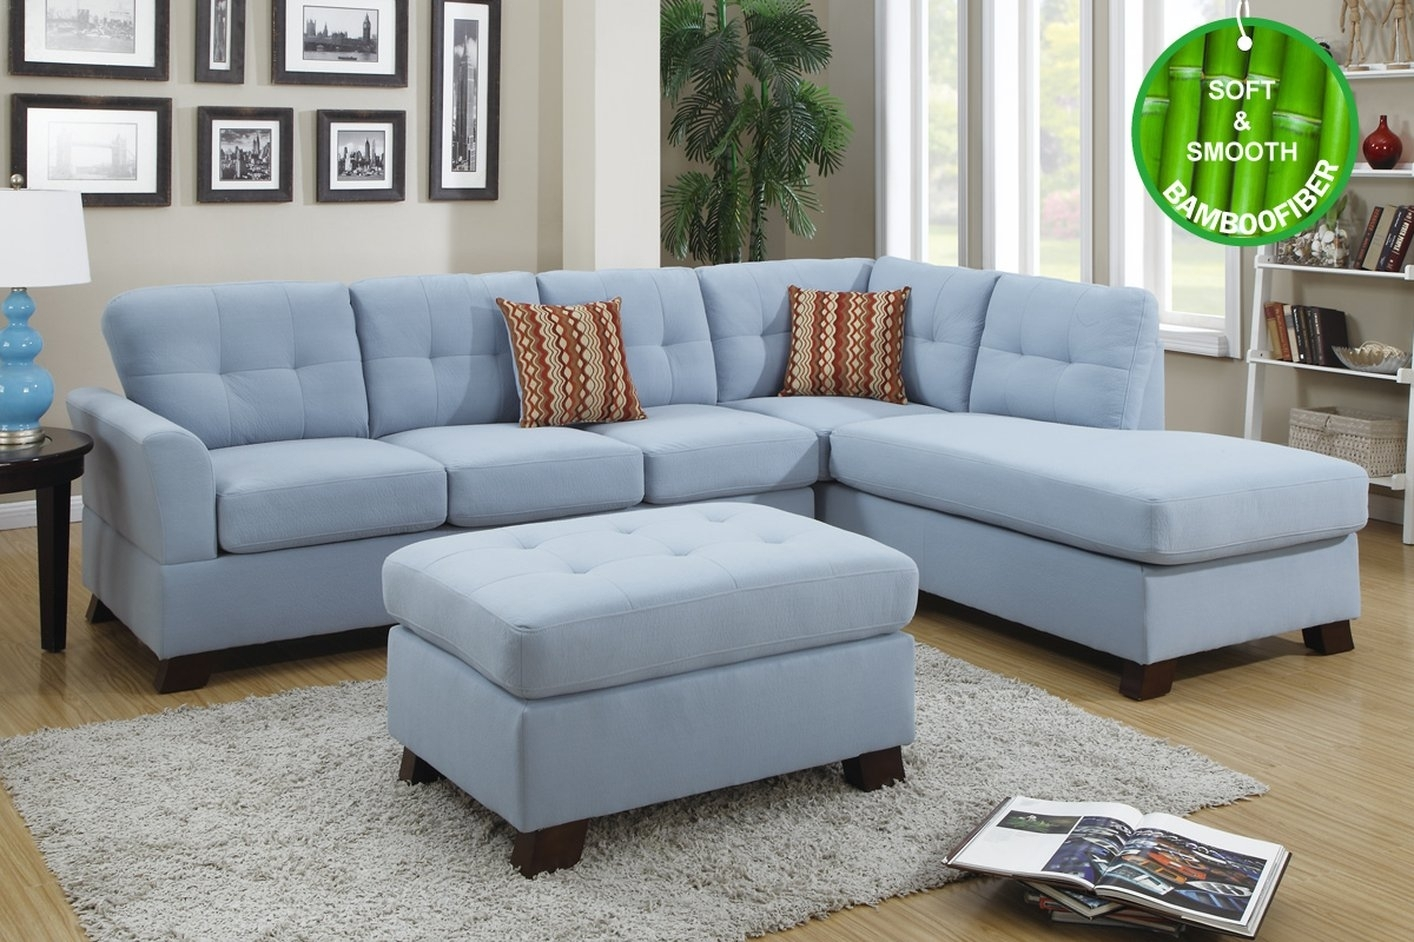 Good Blue Sectional Sofa 45 Modern Sofa Inspiration With Blue intended for Blue Sectional Sofas (Image 13 of 15)